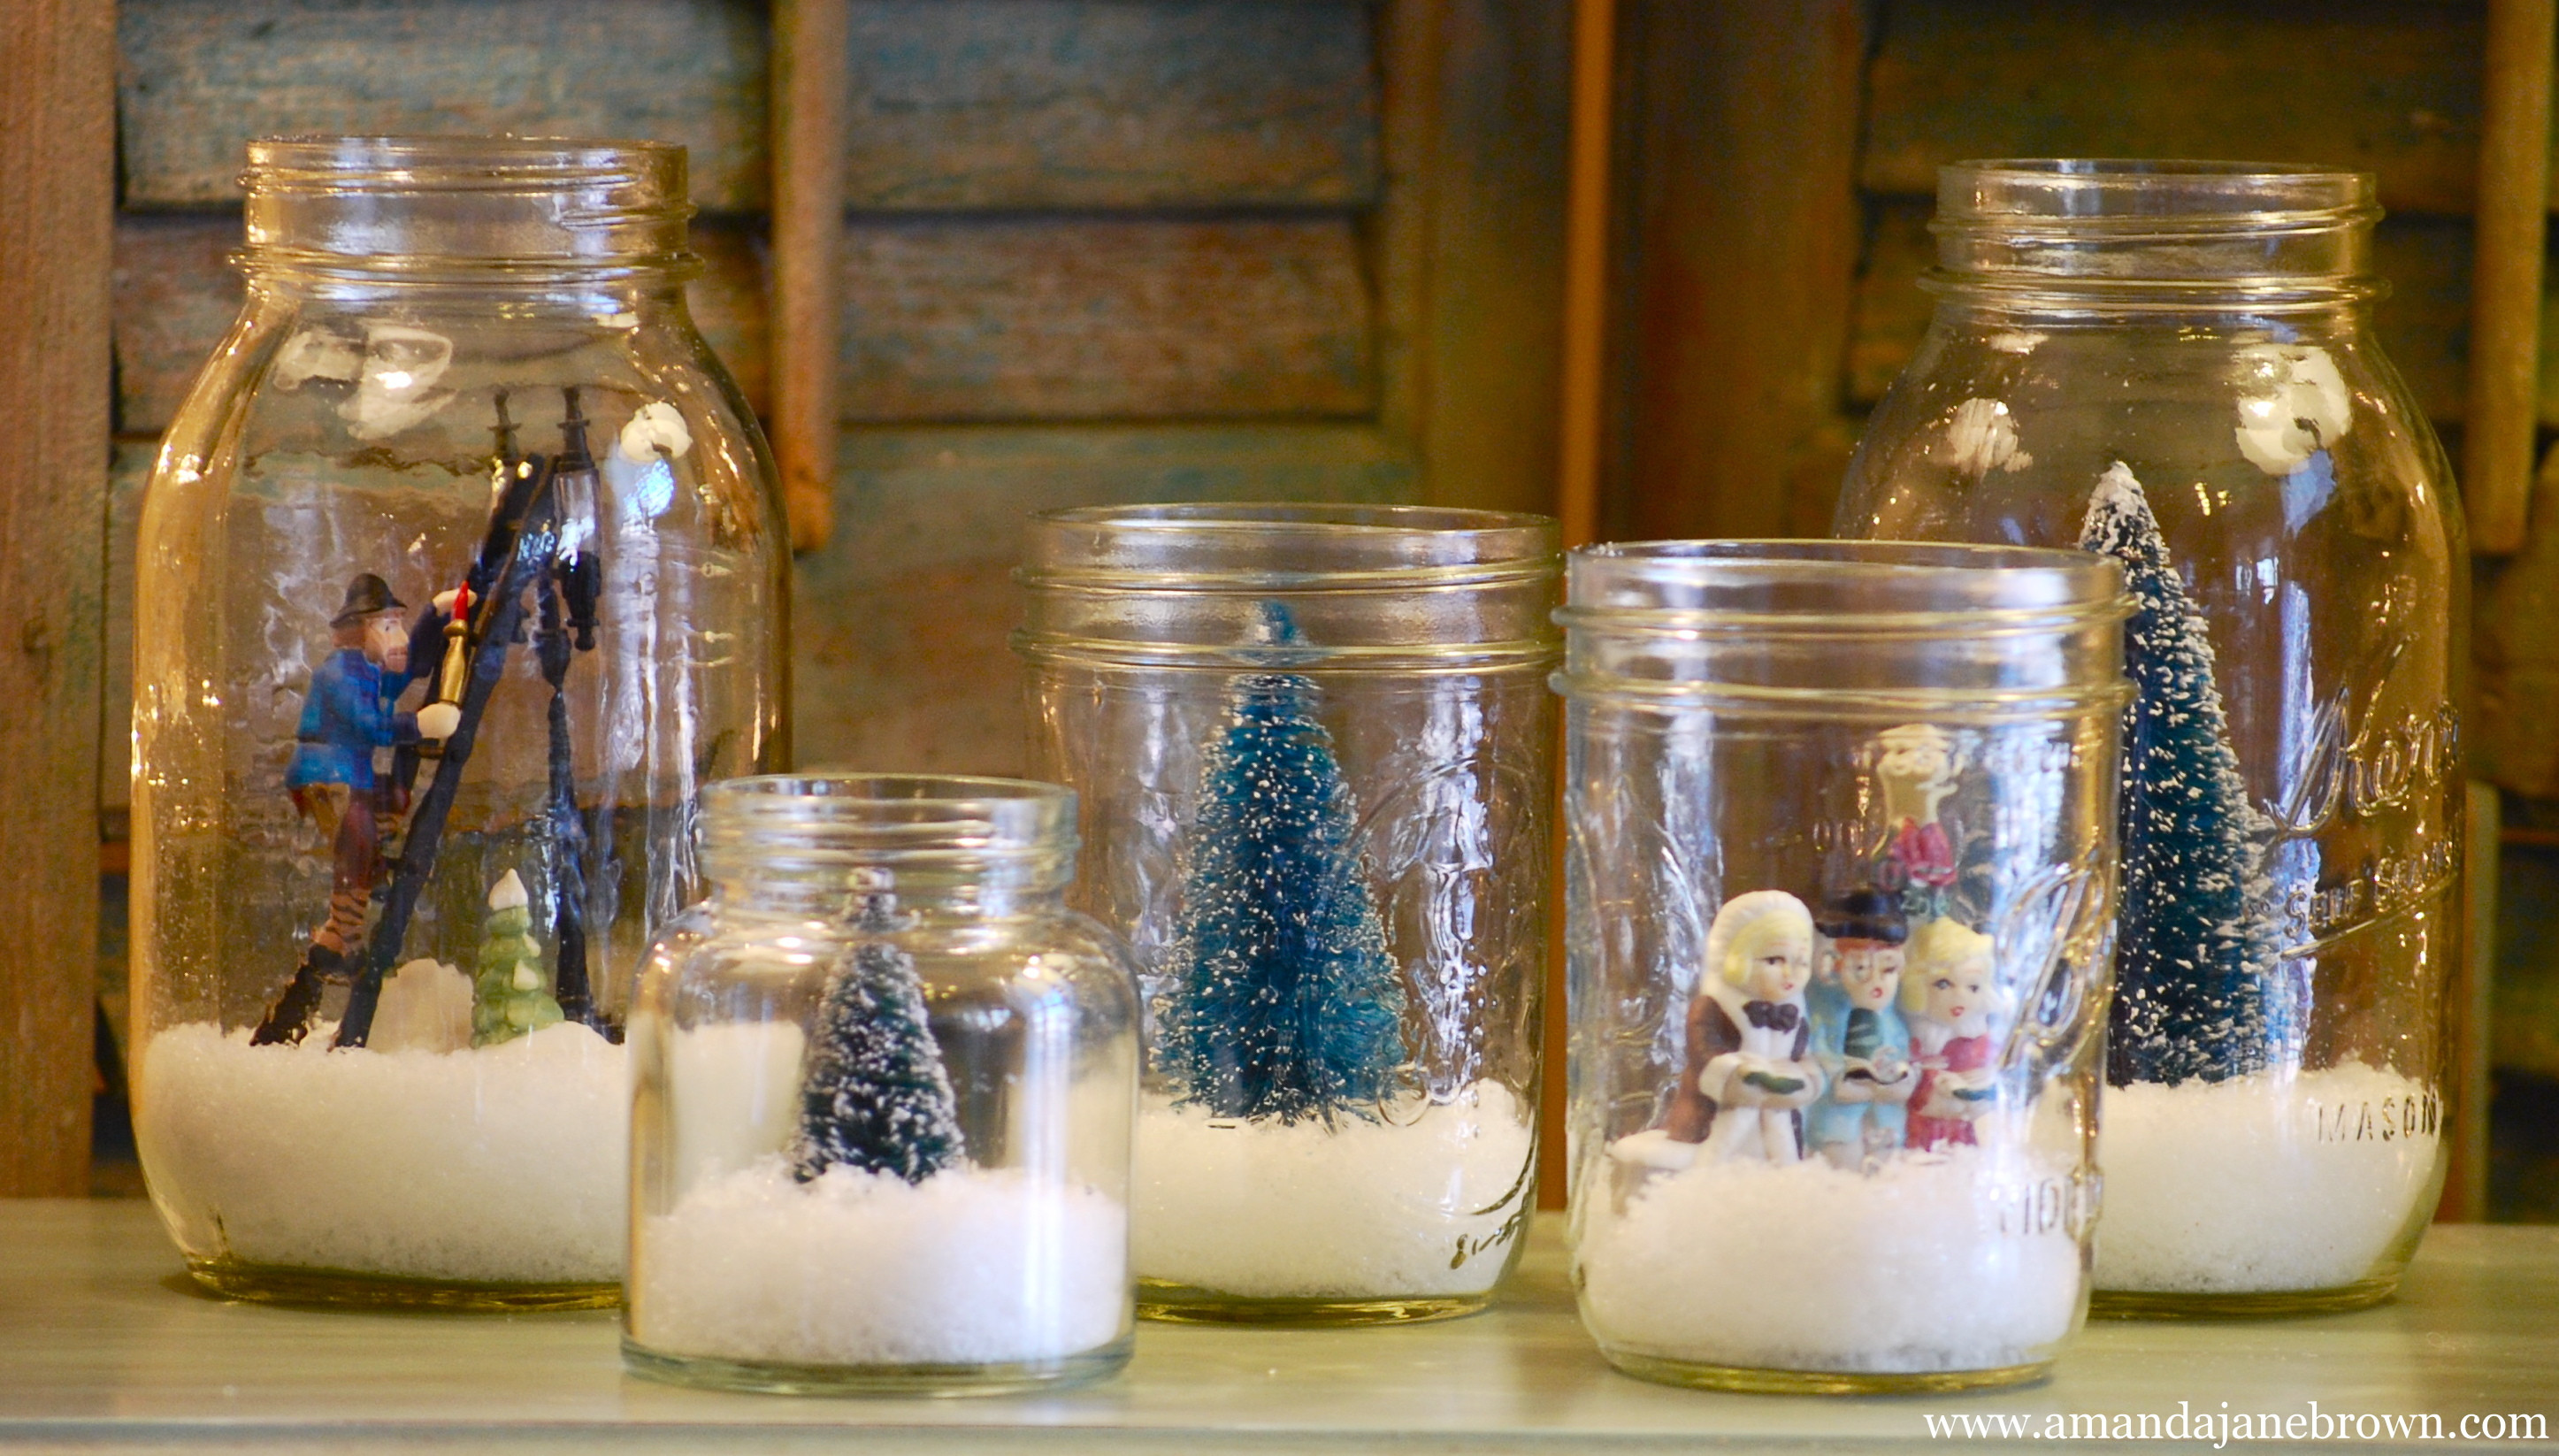 Best ideas about DIY Snow Globes . Save or Pin DIY Snow Globes Amanda Jane Brown Now.